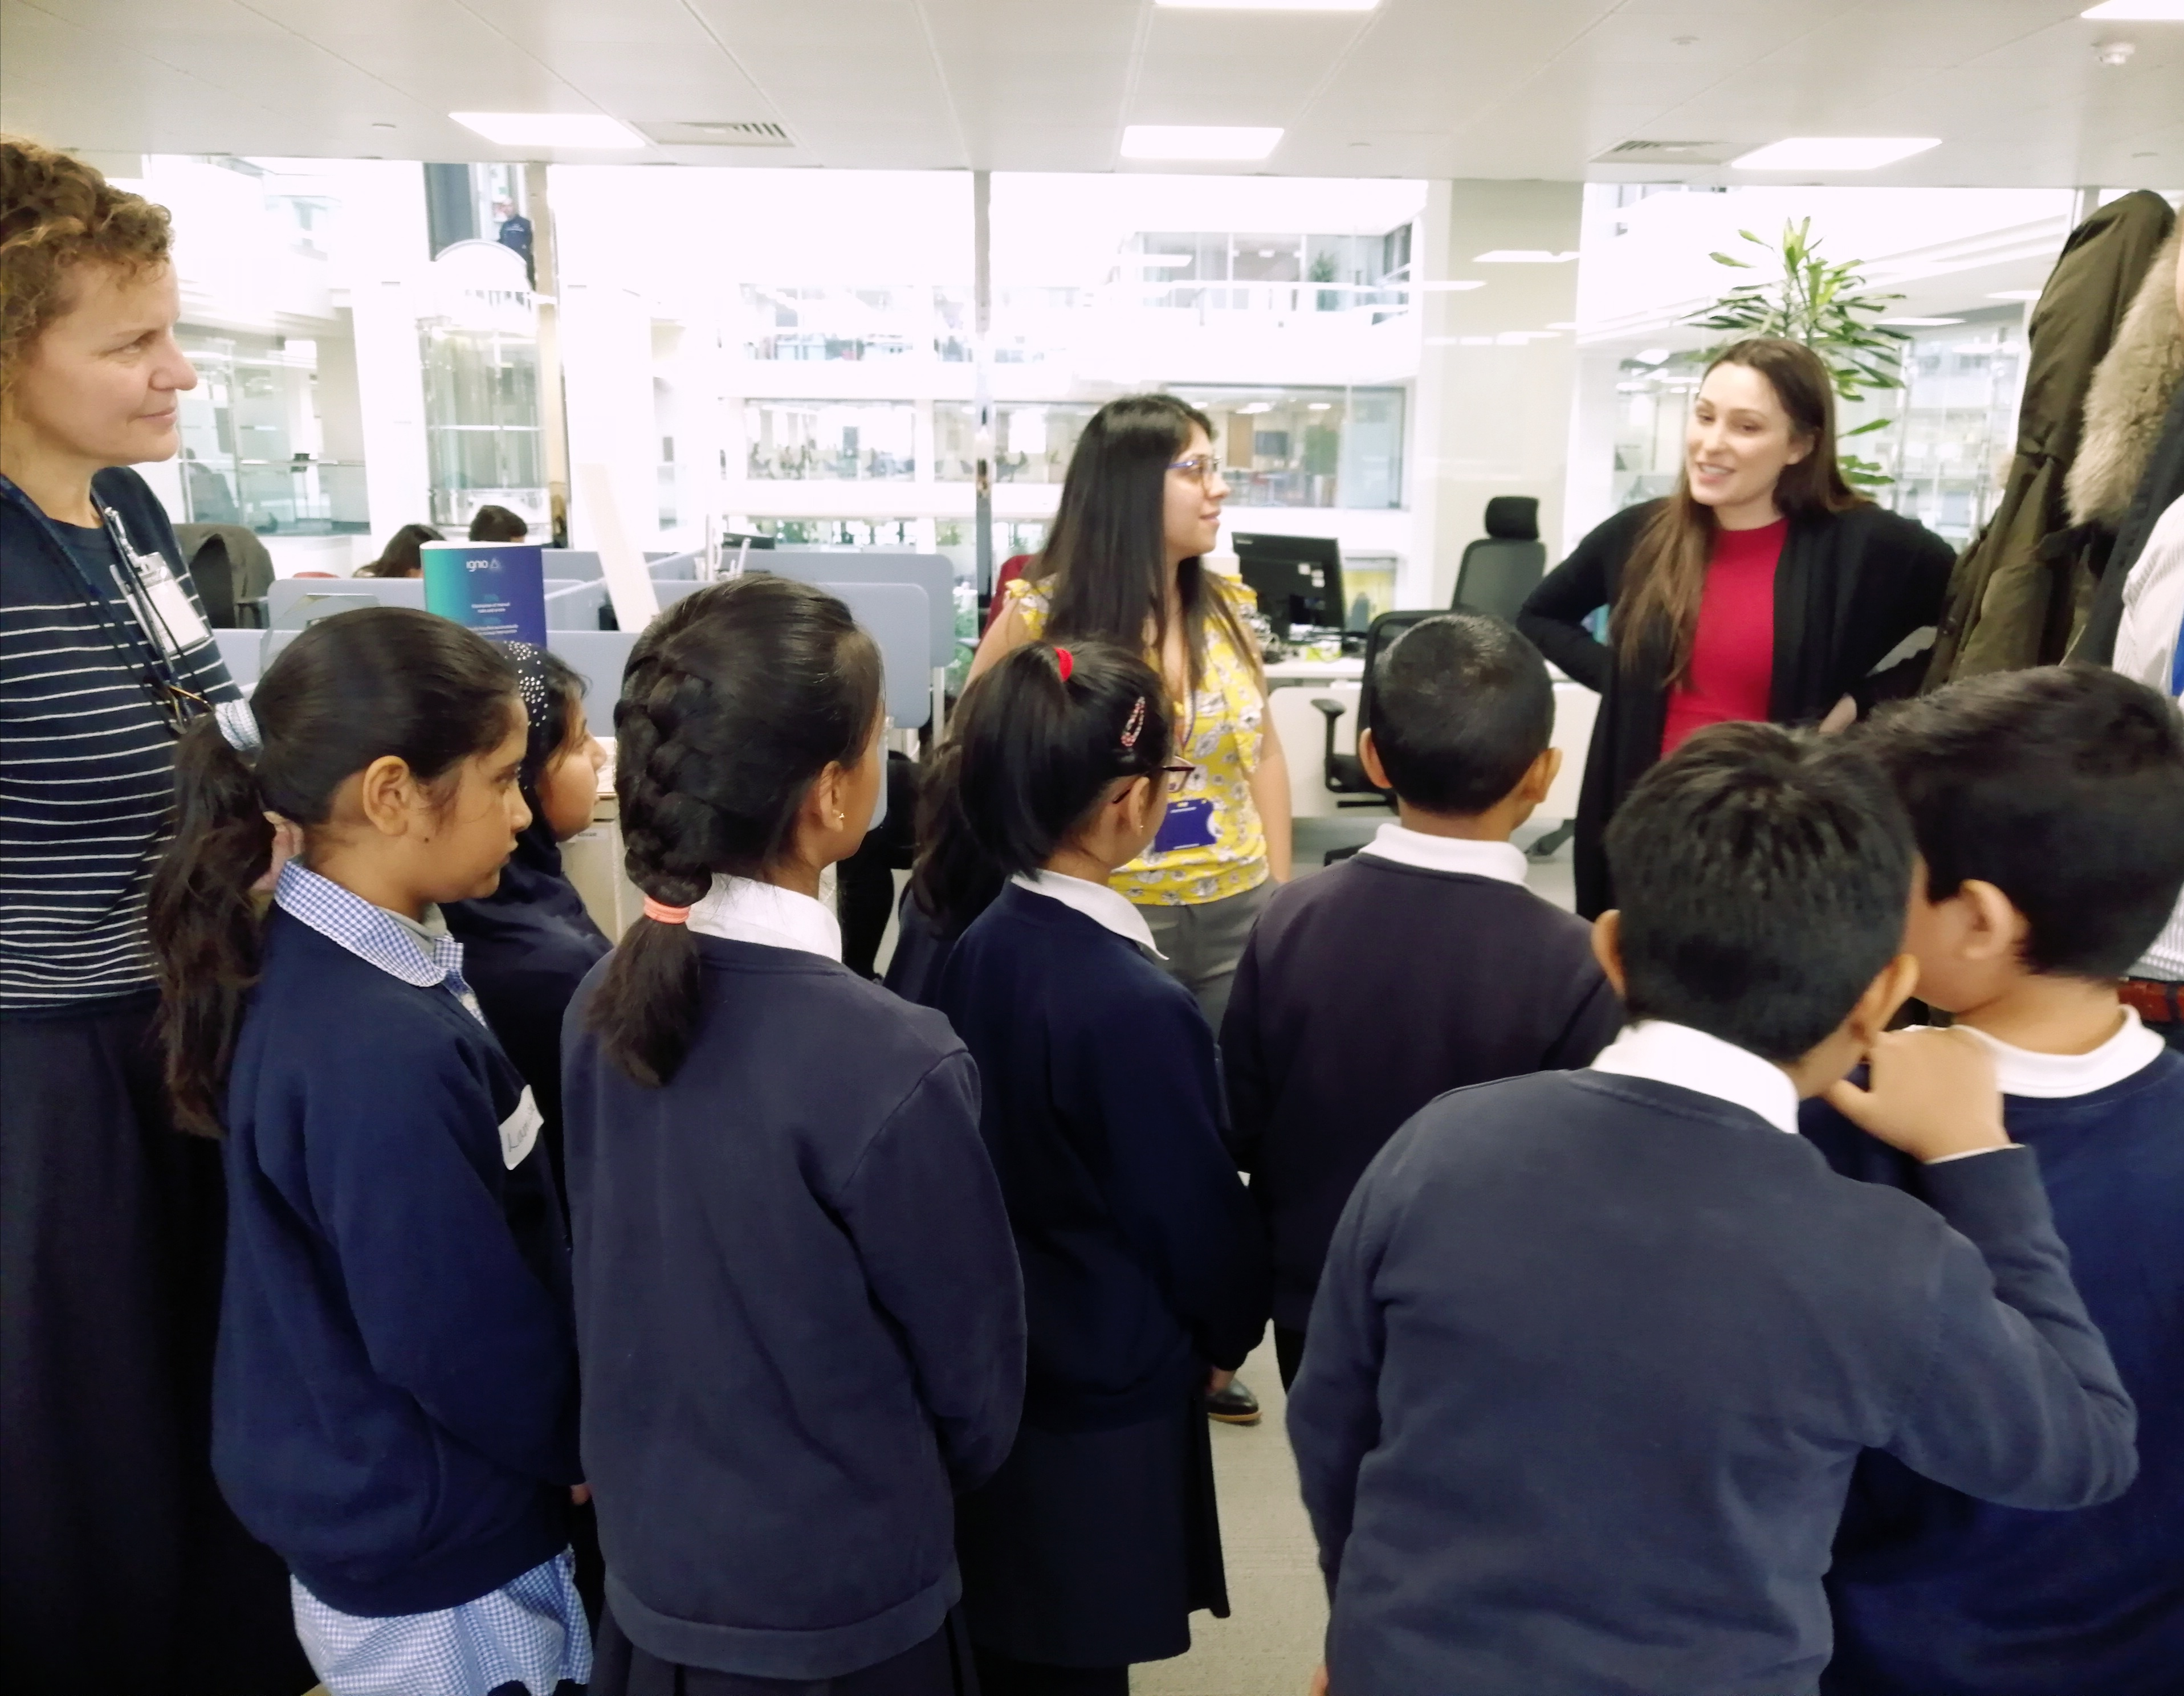 Students use Listening and Problem Solving to carry out market research on their tour of the Tata Consultancy Services office